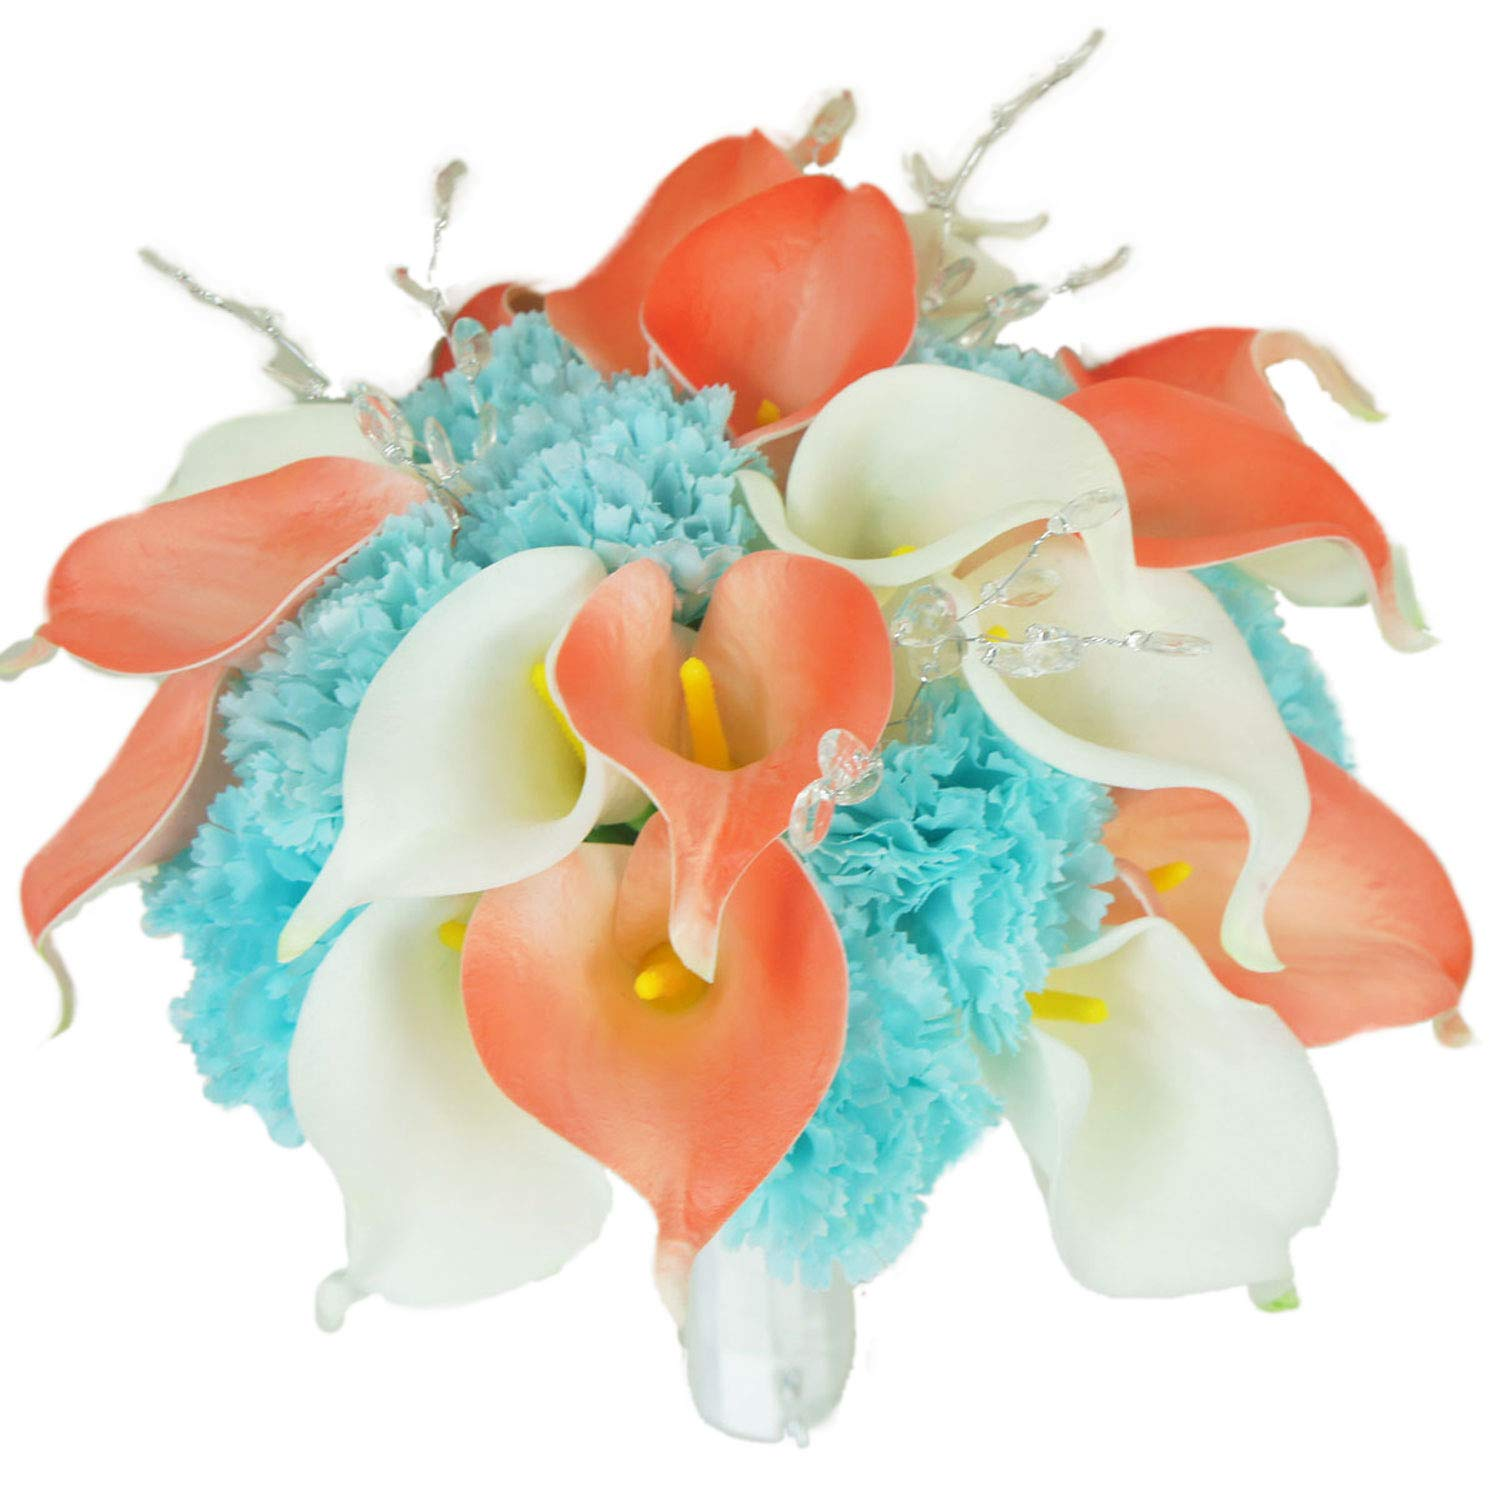 Lily Garden Real Touch Calla Lily Coral and White and Carnation Turquoise Flowers Wedding Bouquet (Bridal Bouquet) by Lily Garden